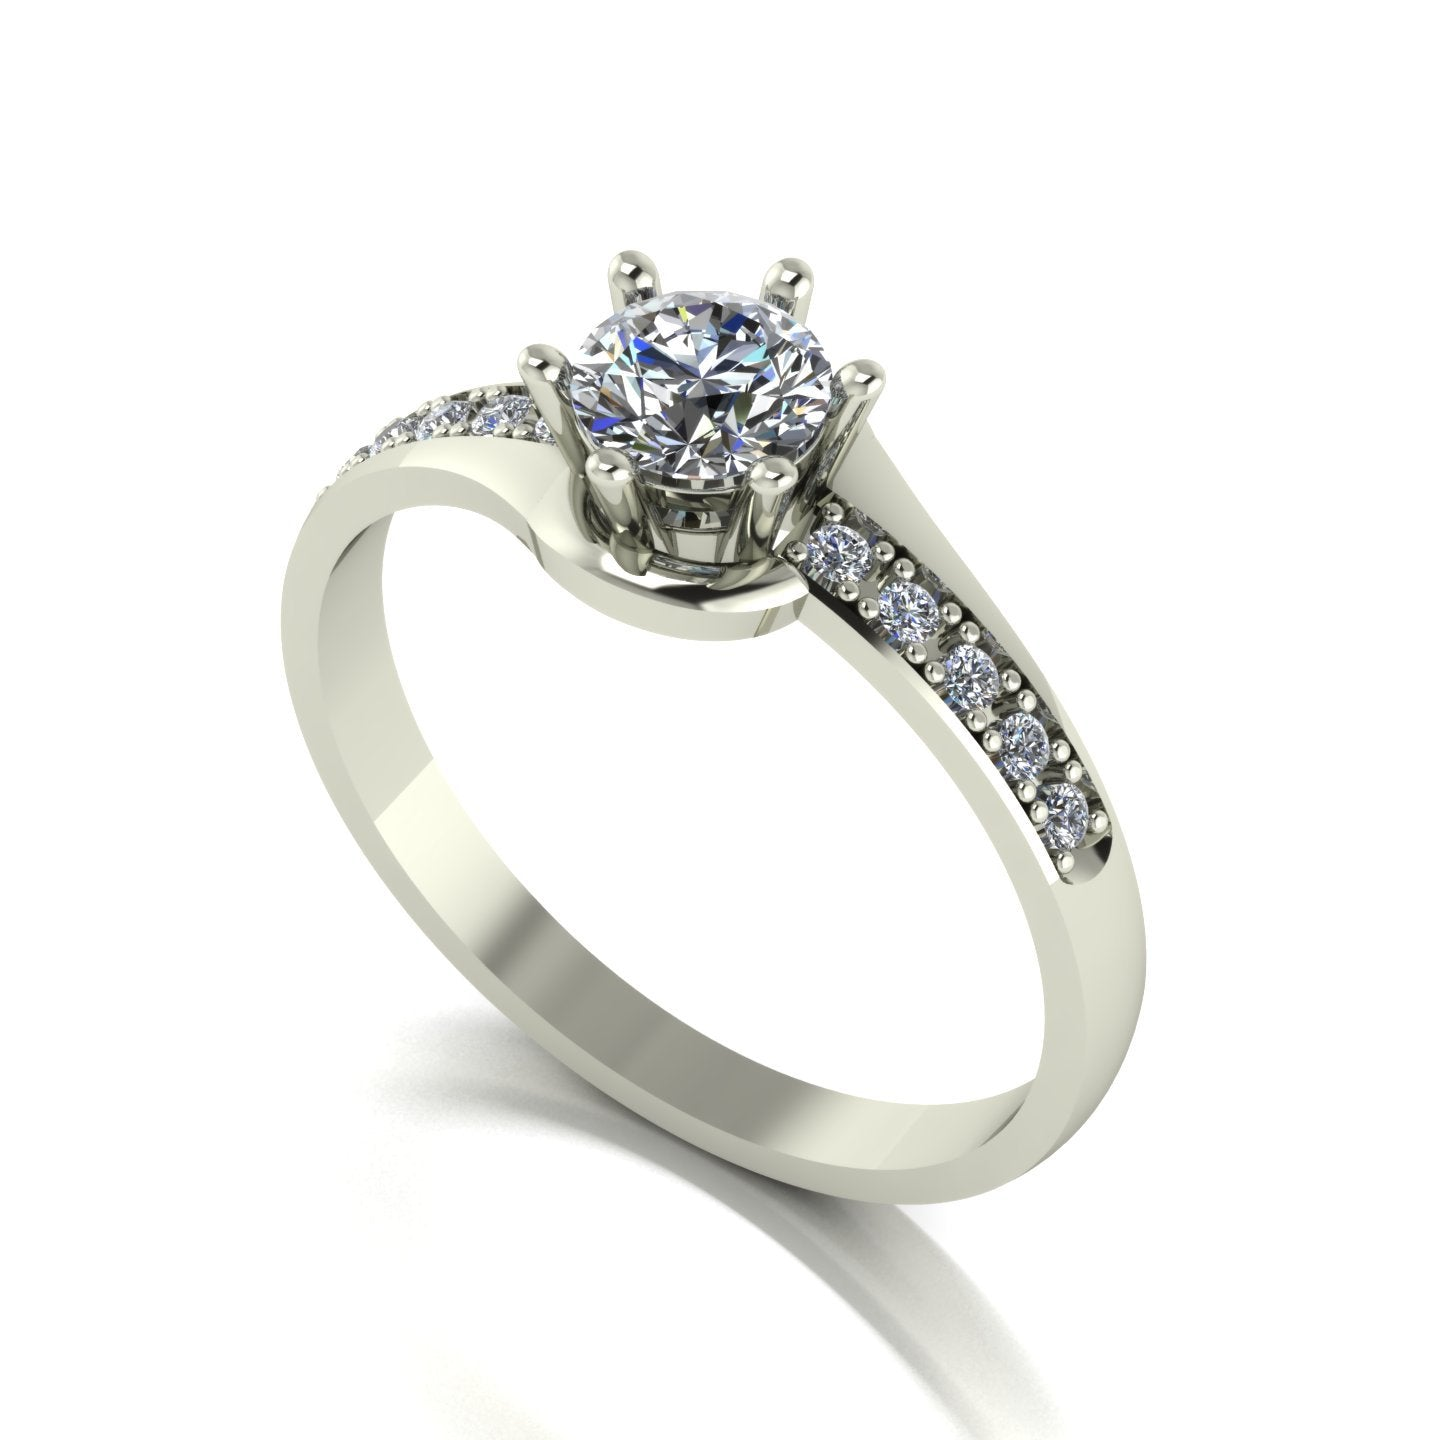 0.60ct (1x 5.0mm & 10x 1.3mm) Round Moissanite Set shoulder Single Stone Ring